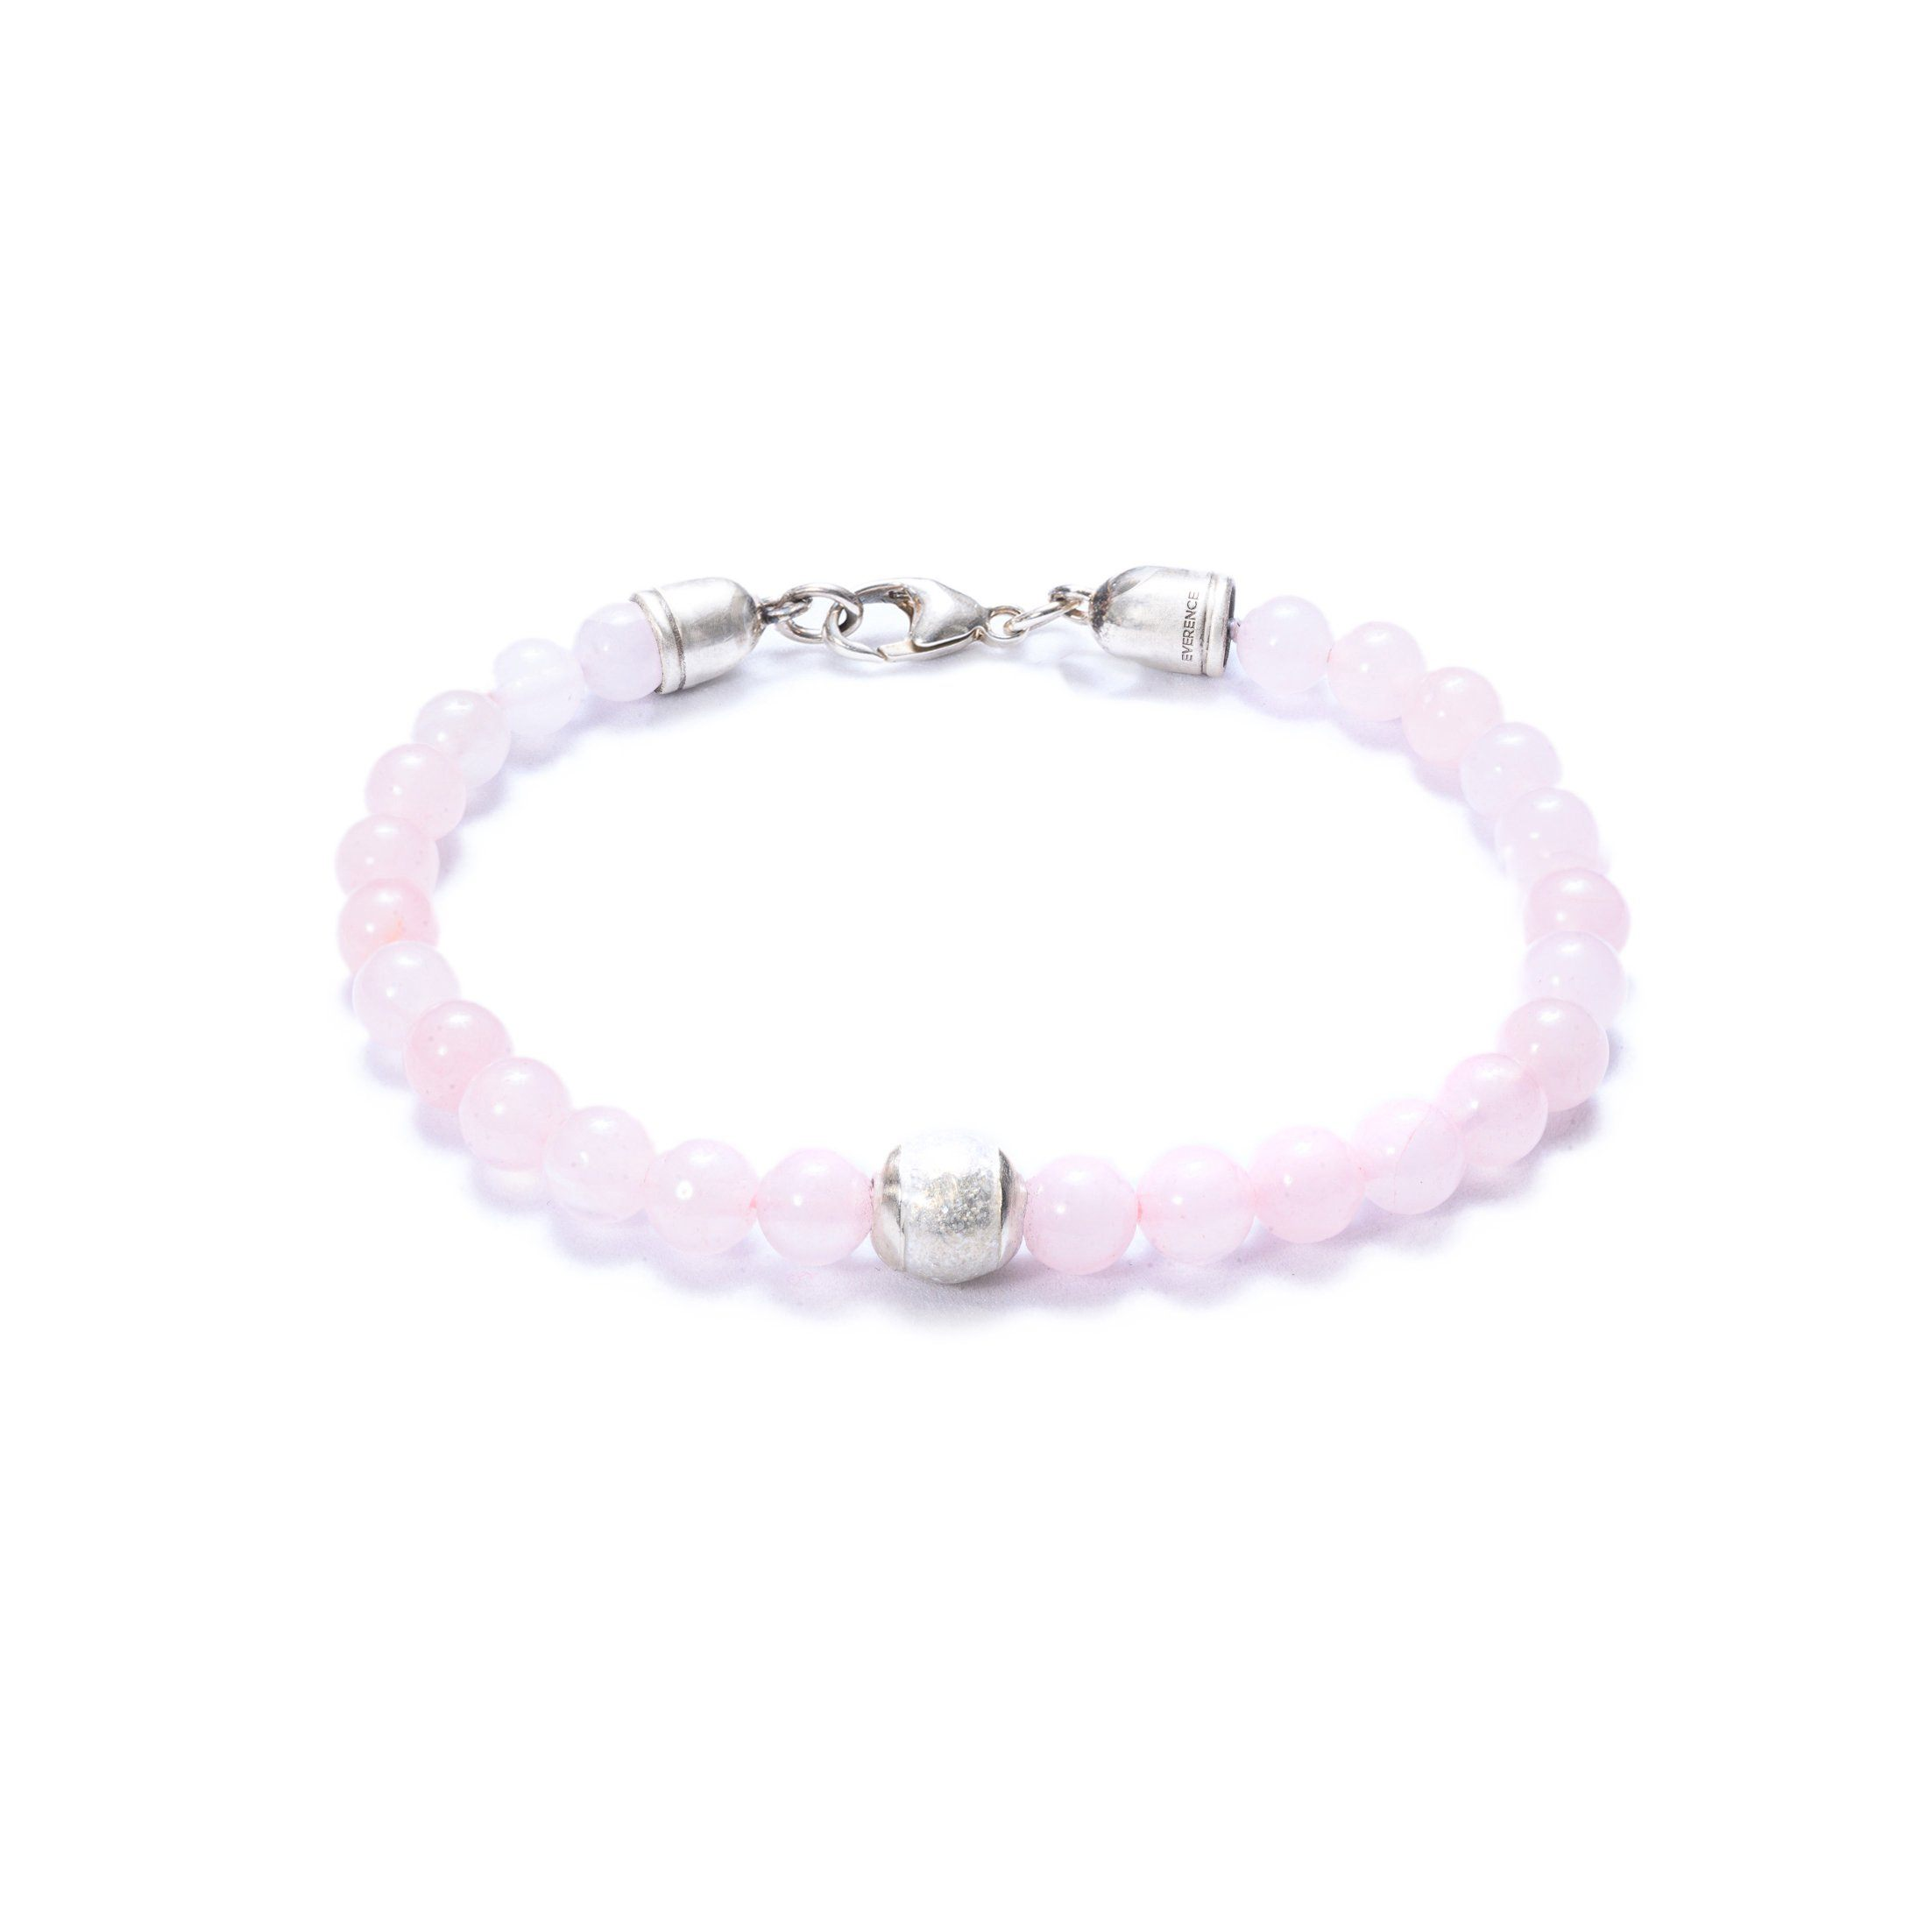 Rose Quartz, One Everence Bead